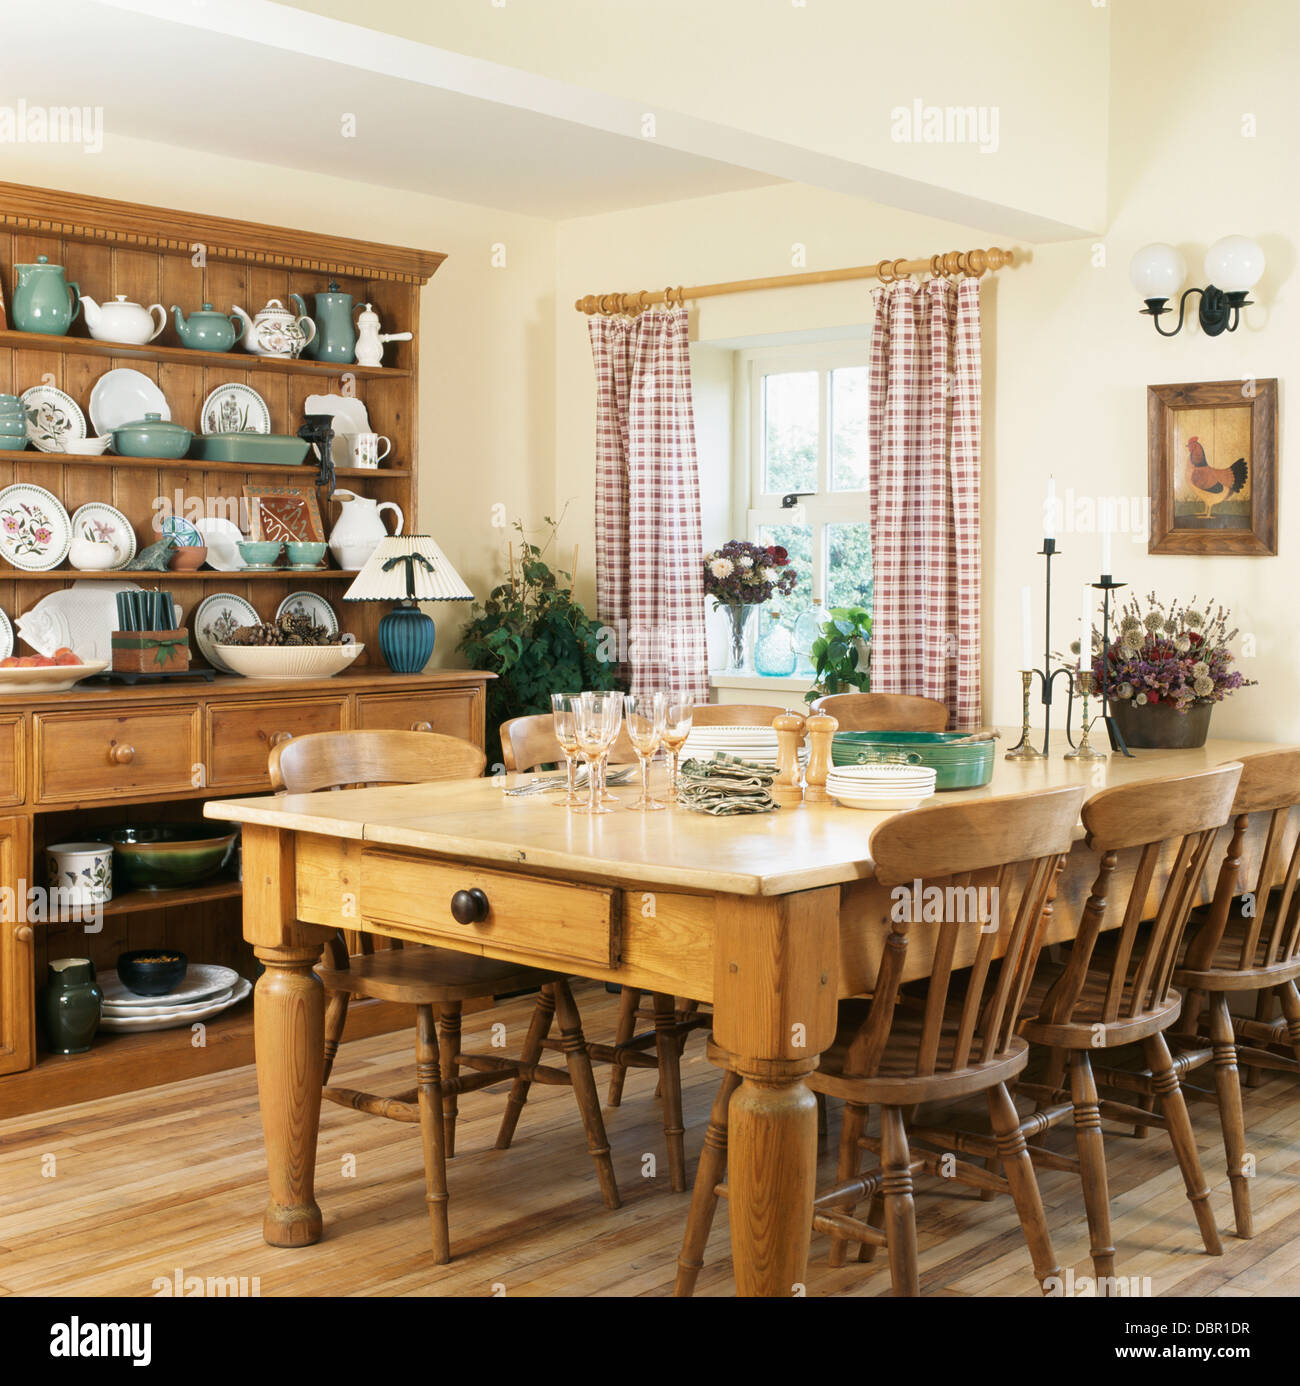 Pine Table And Chairs And Large Pine Dresser In Country Kitchen With Stock Photo Royalty Free